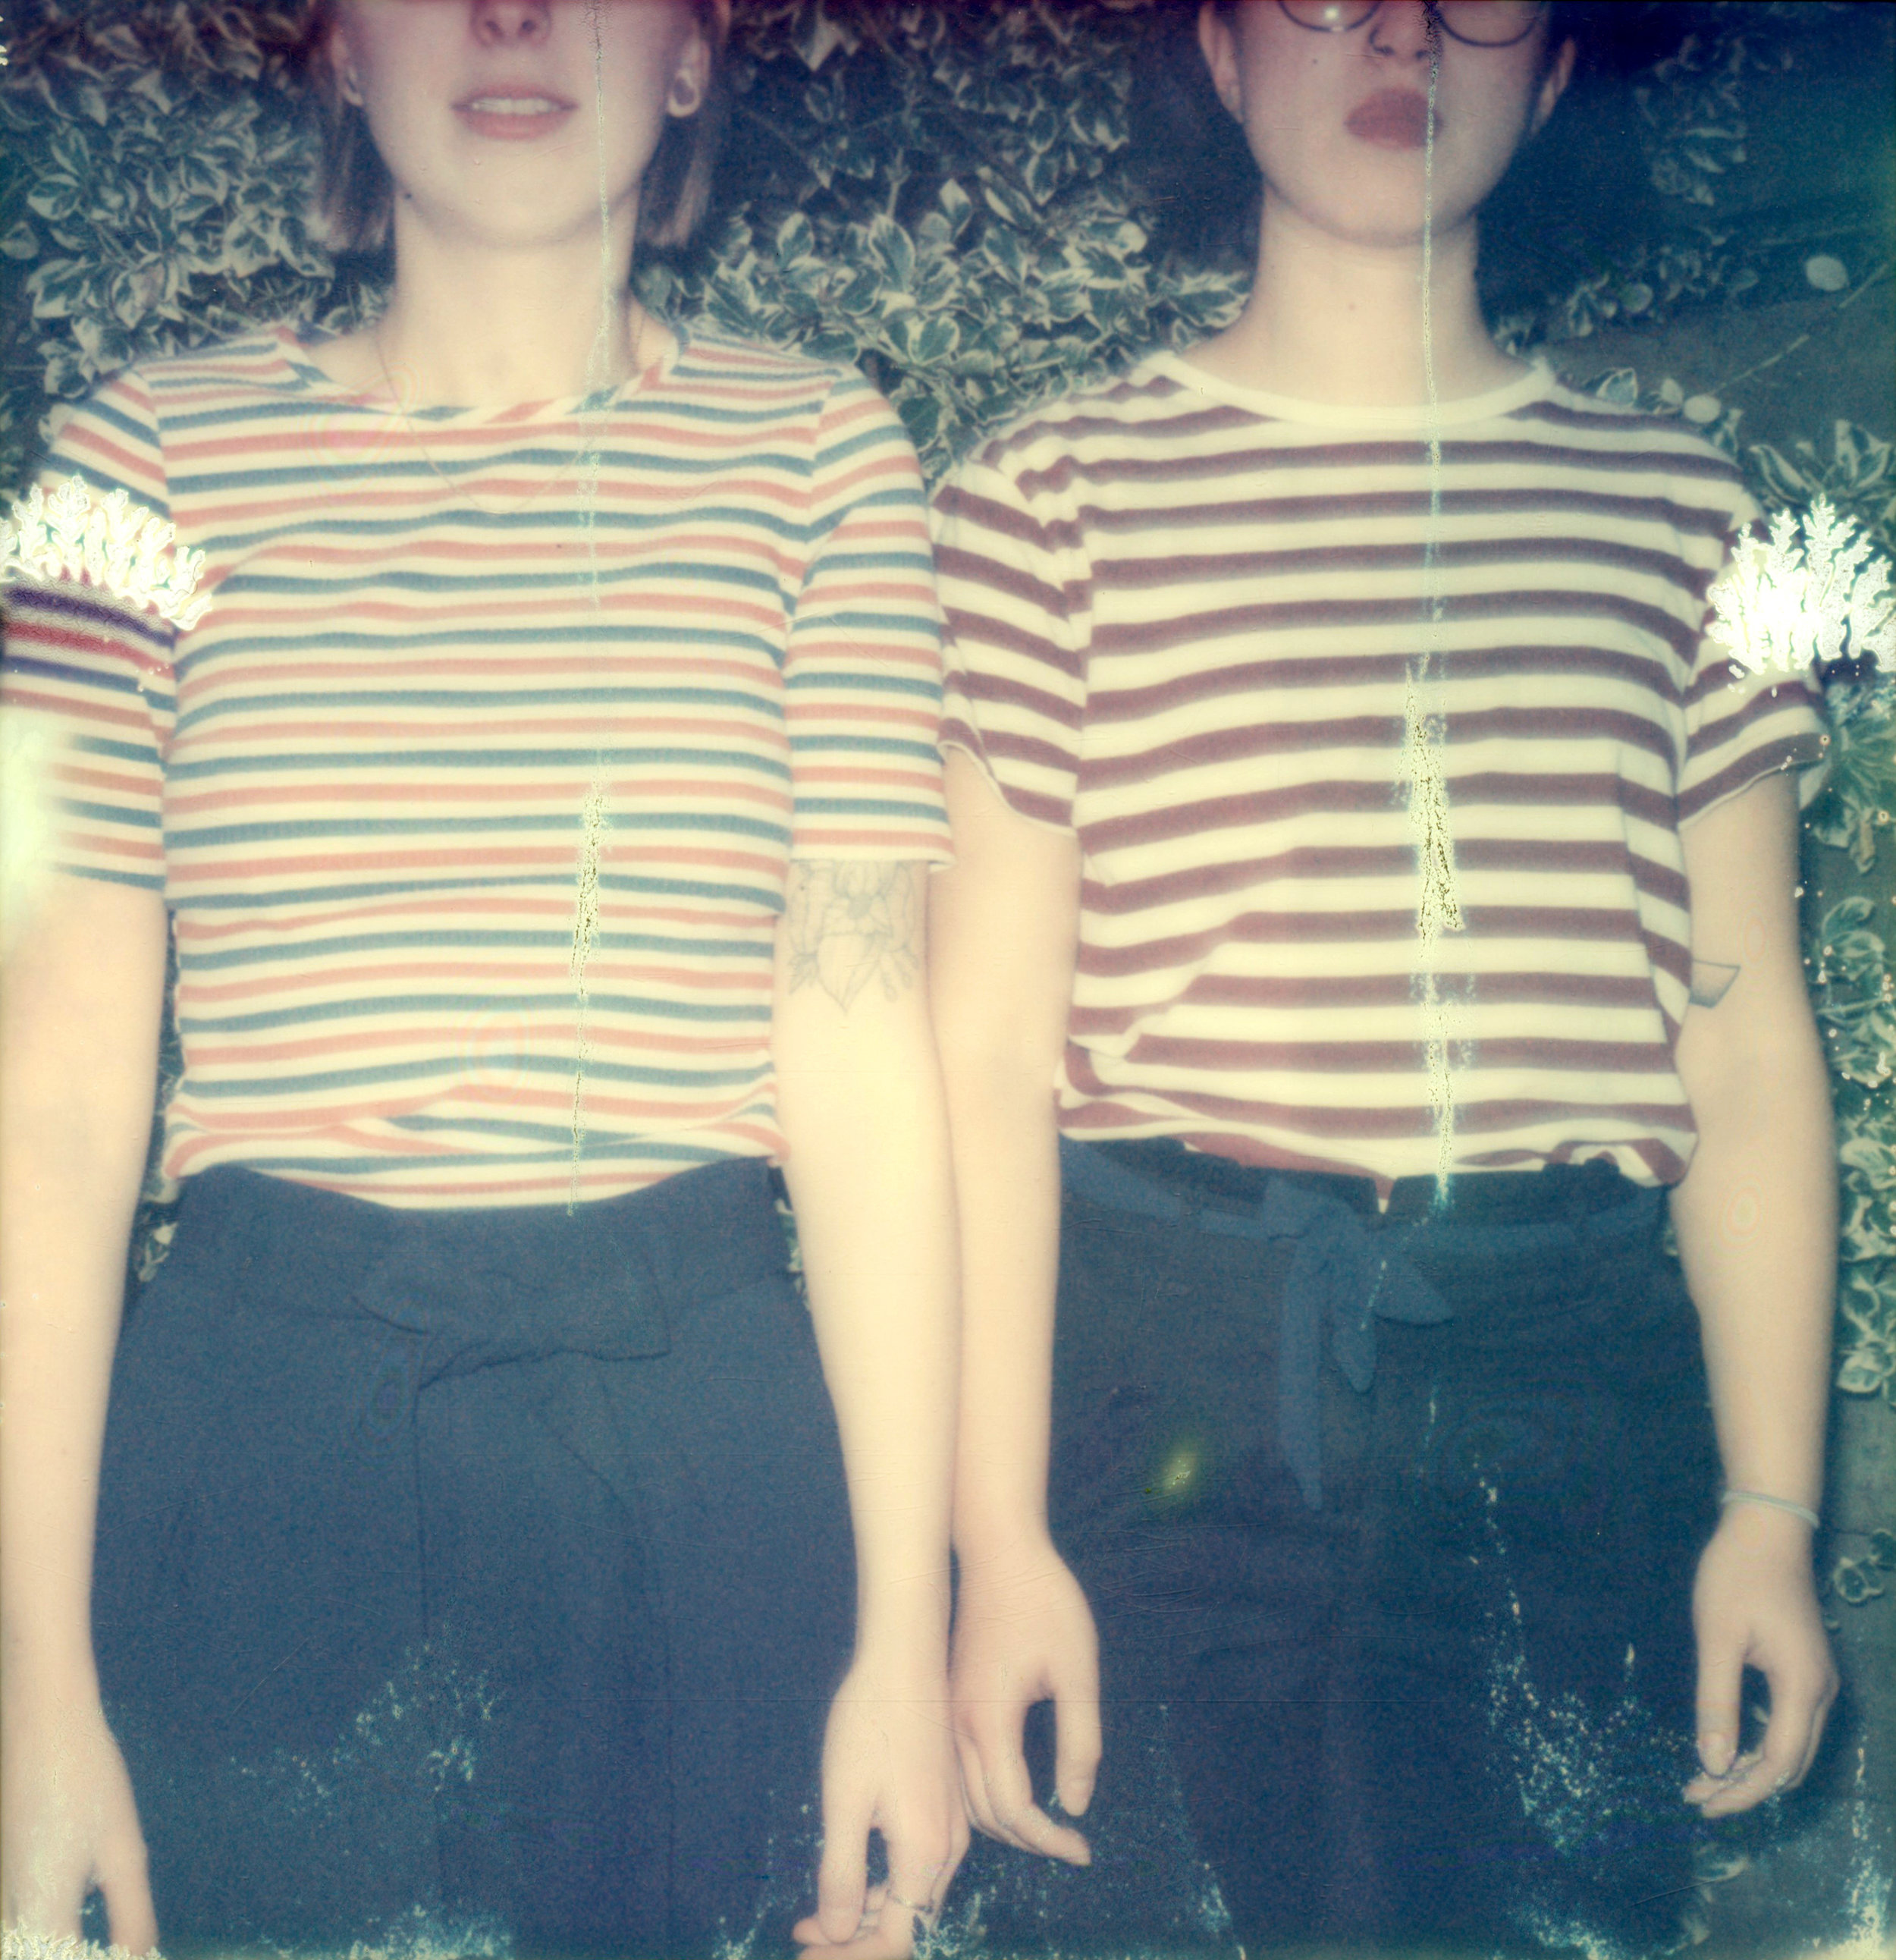 Striped Girls | Polaroid SLR680 | Impossible Project Gold Frame Color 600 | Clifford Jordeans